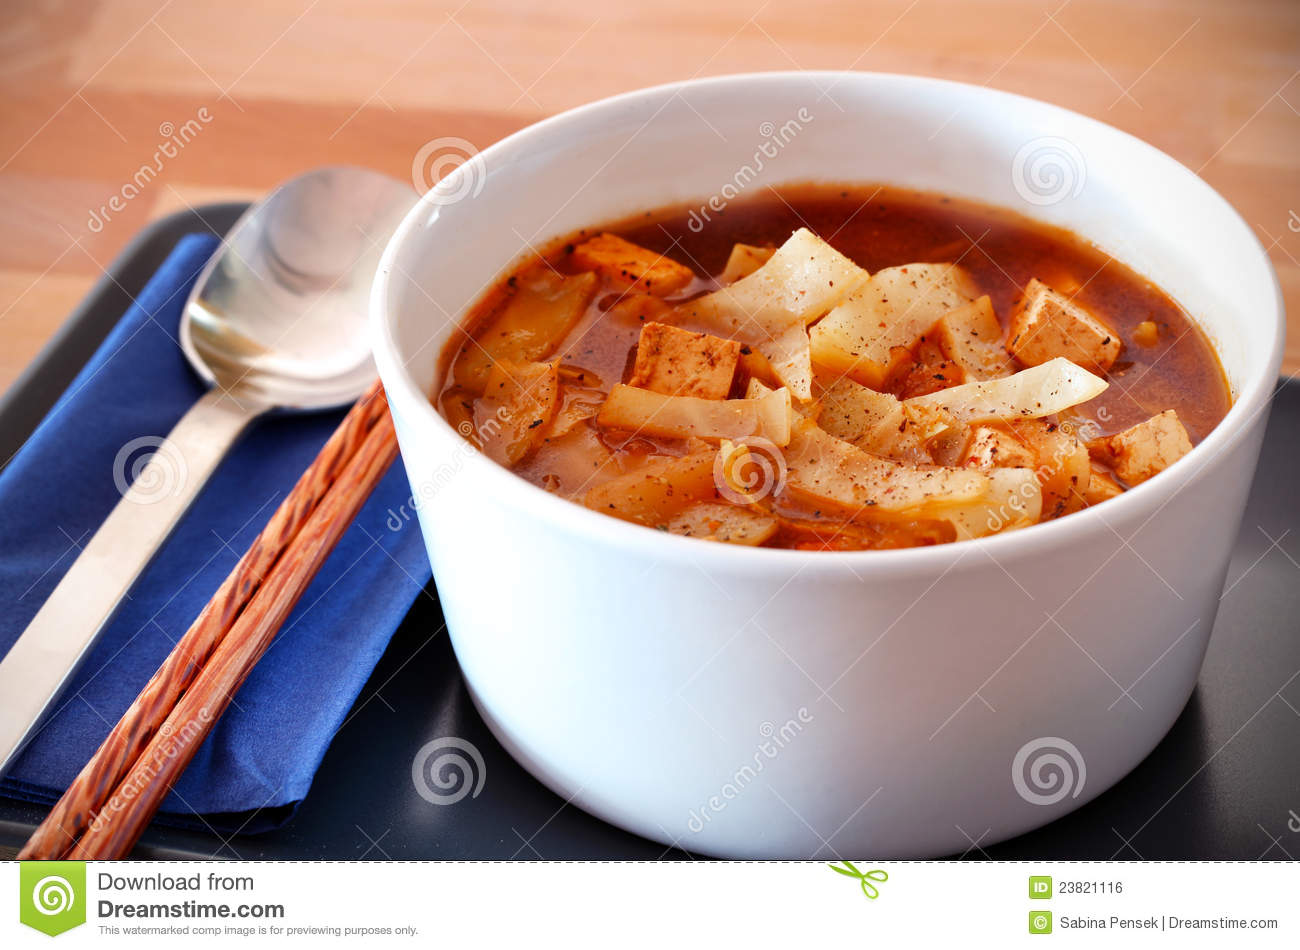 Hot And Sour Chinese Cabbage Soup Royalty Free Stock Image - Image ...